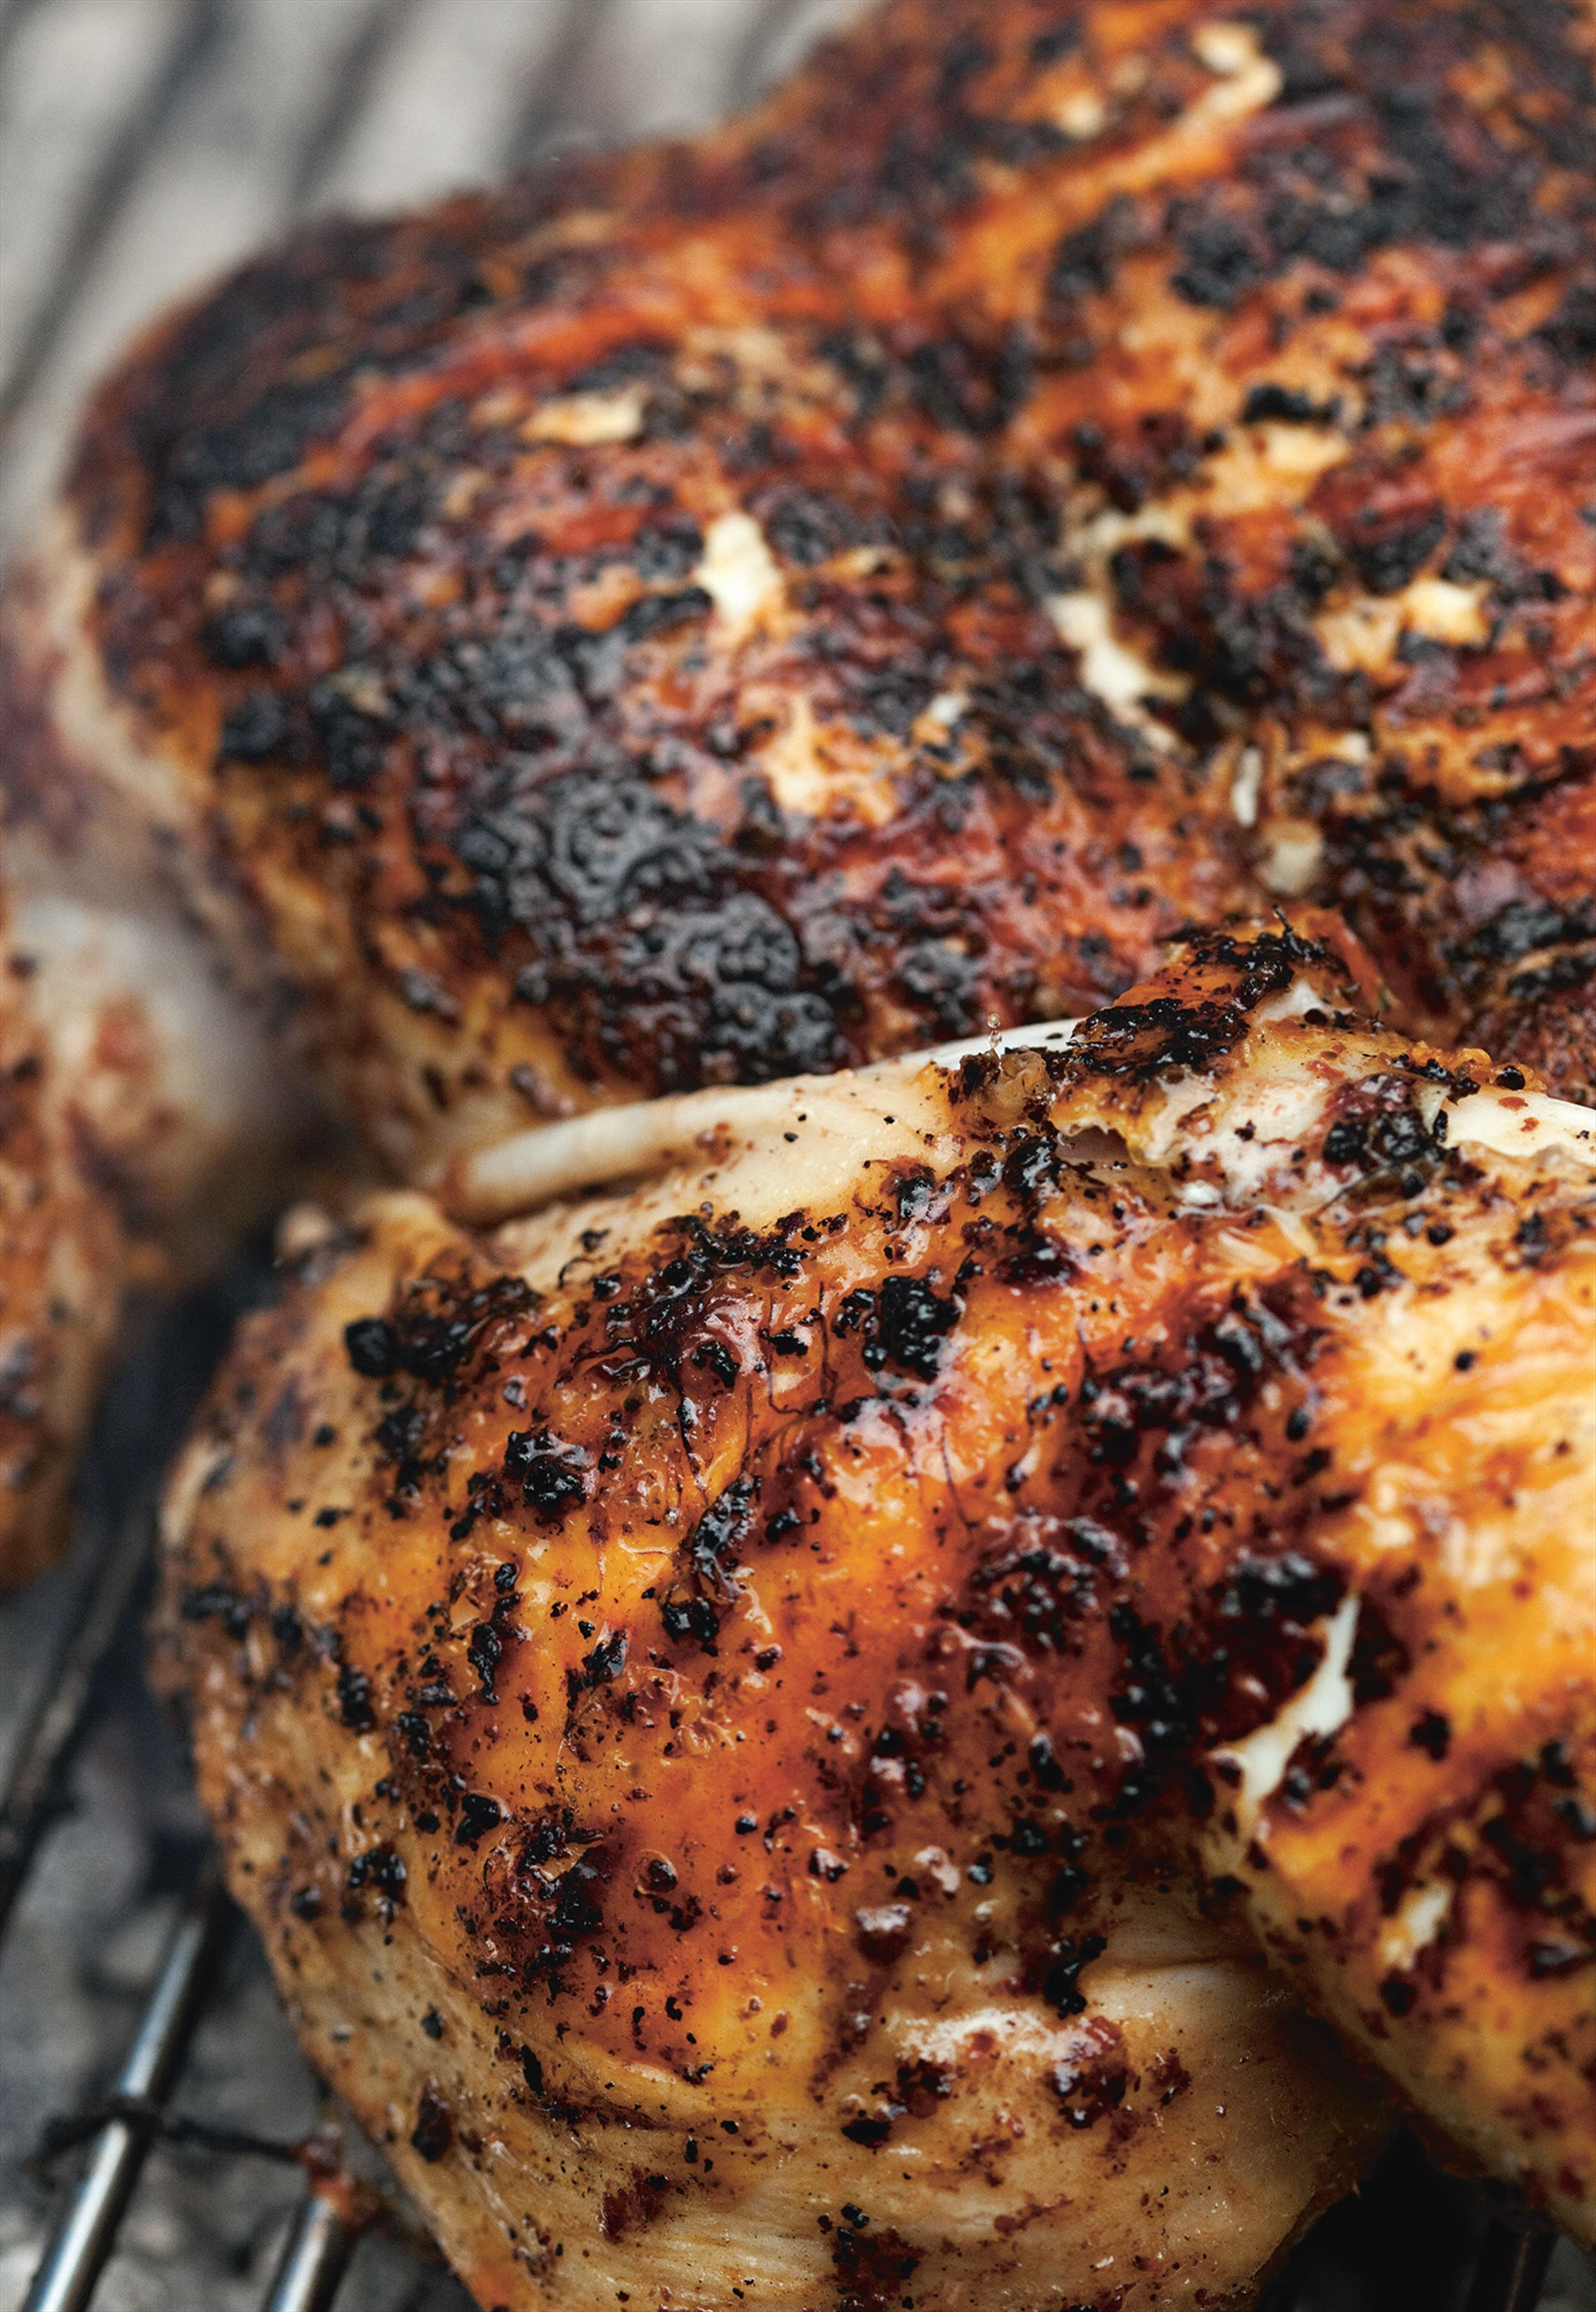 Barbecued chicken with sumac